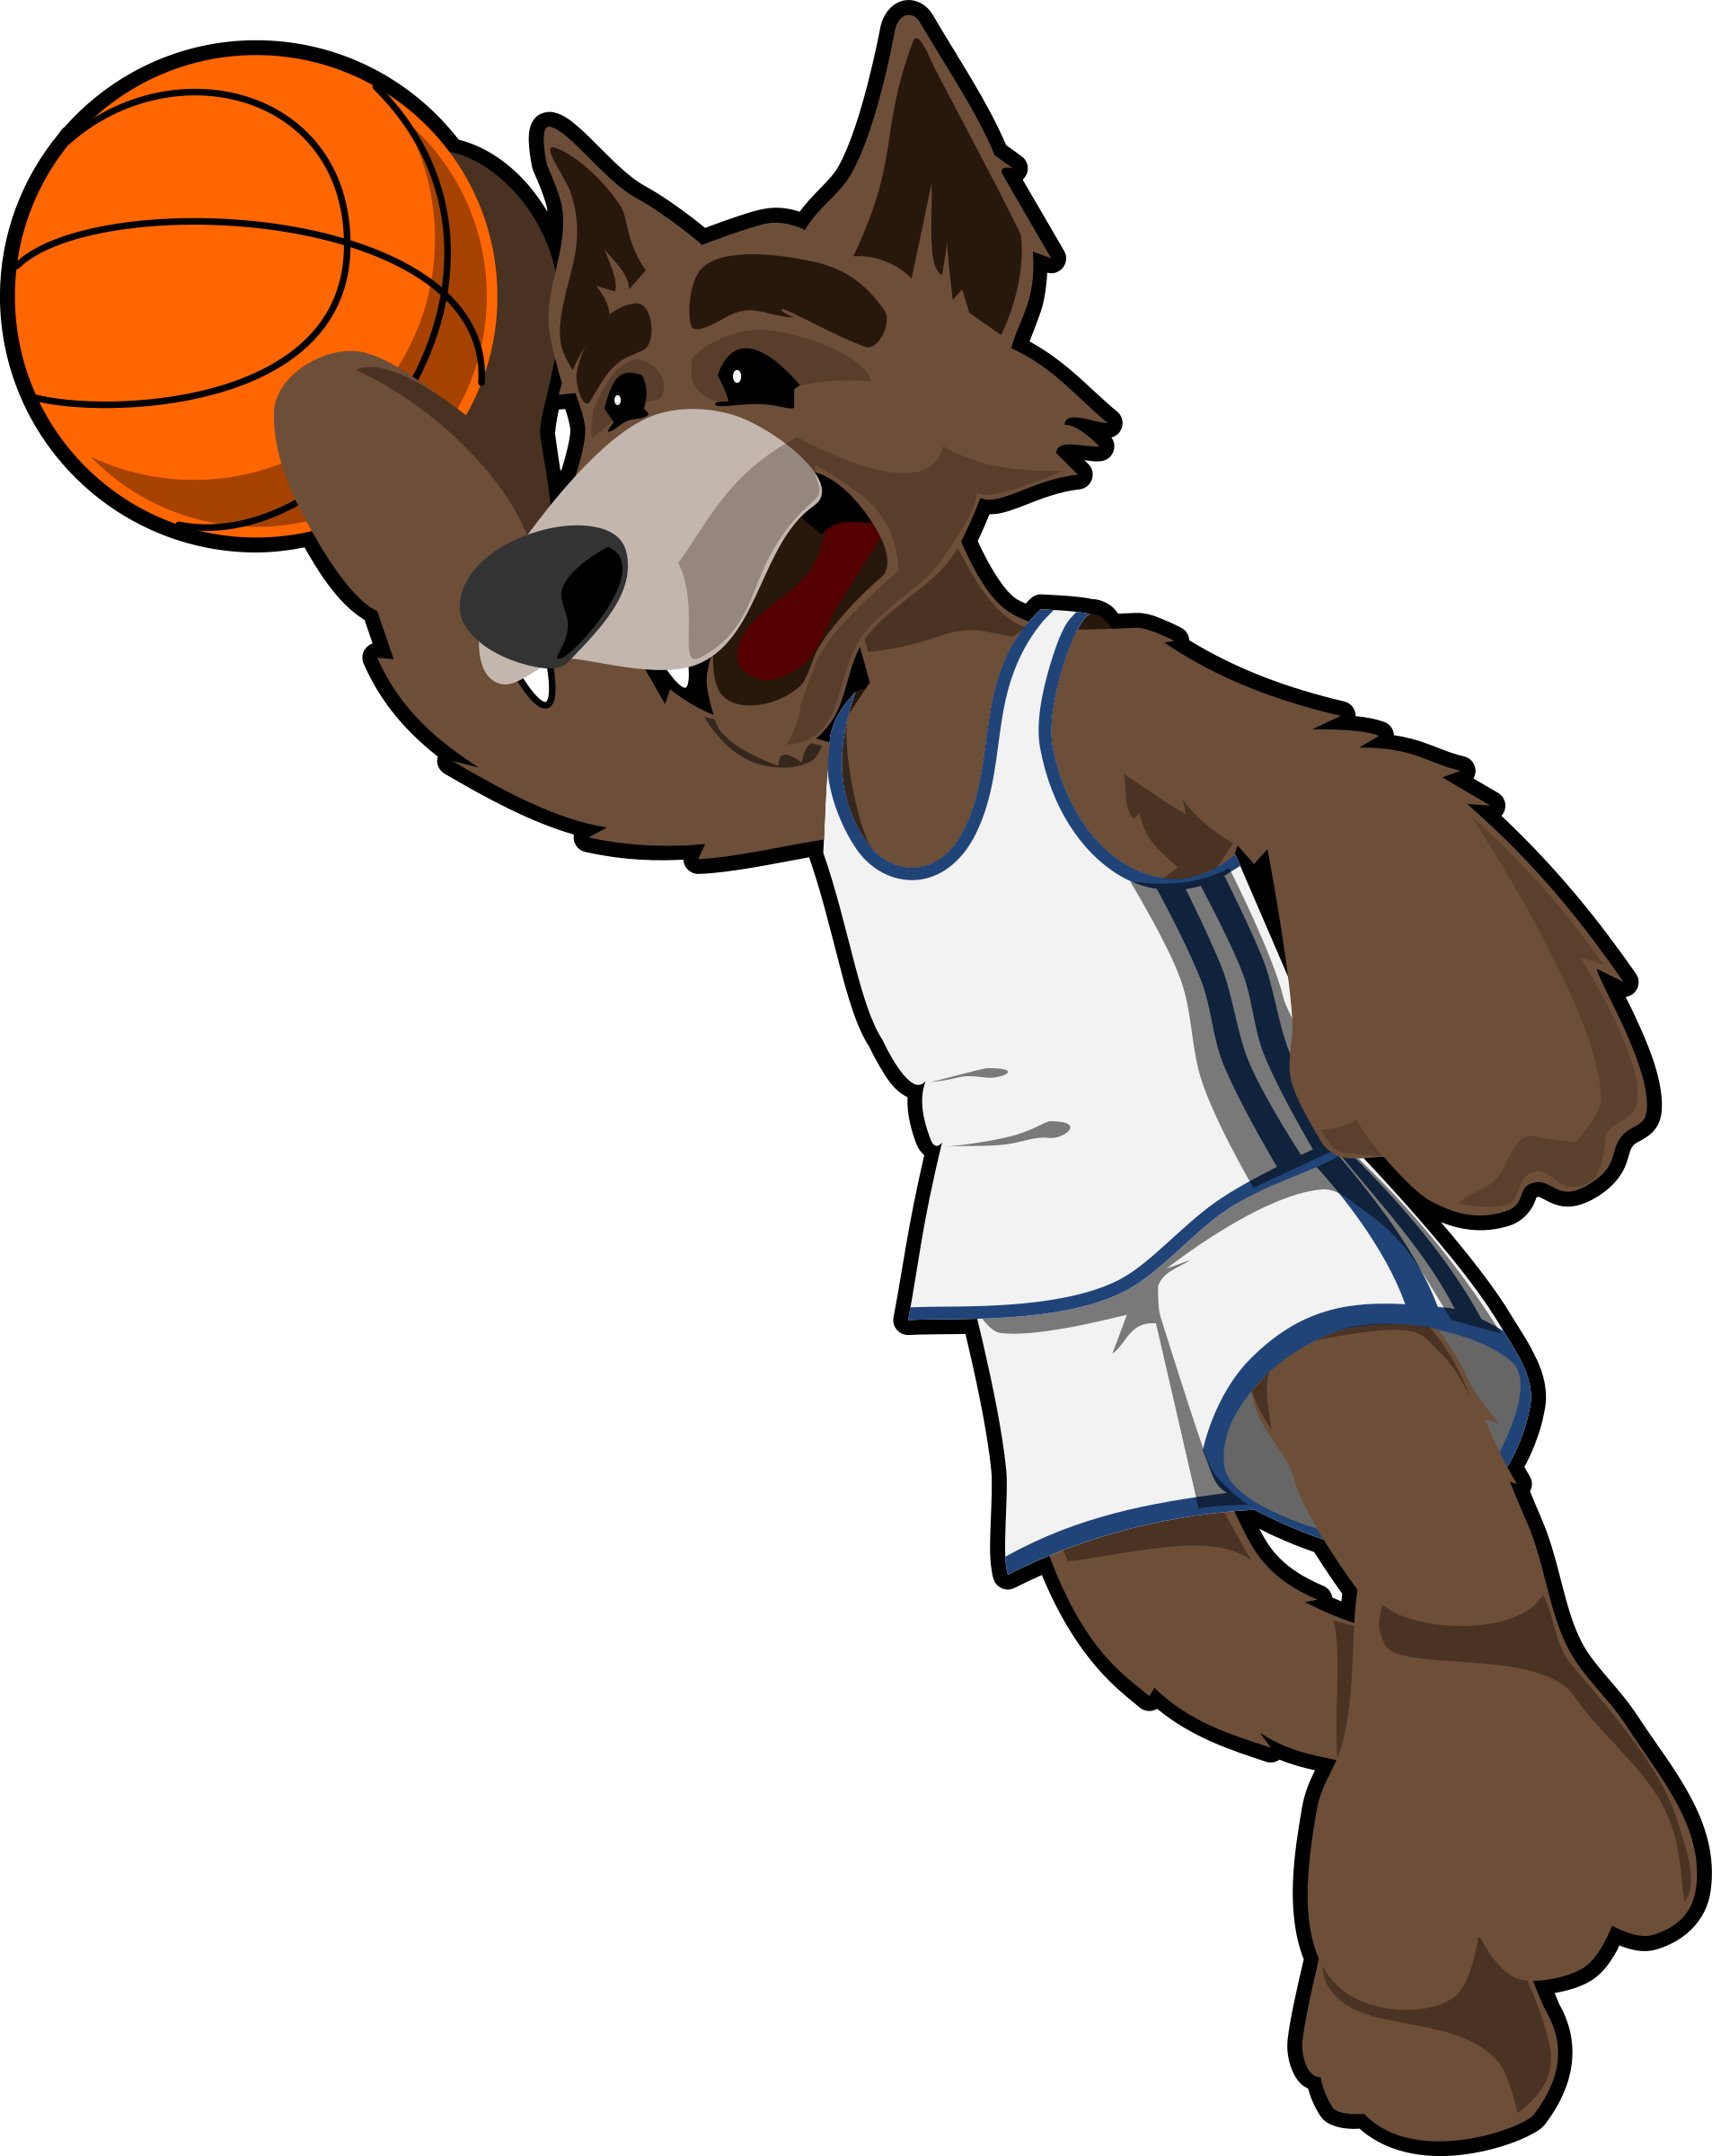 Basketball wolf big image. Wolves clipart cartoon